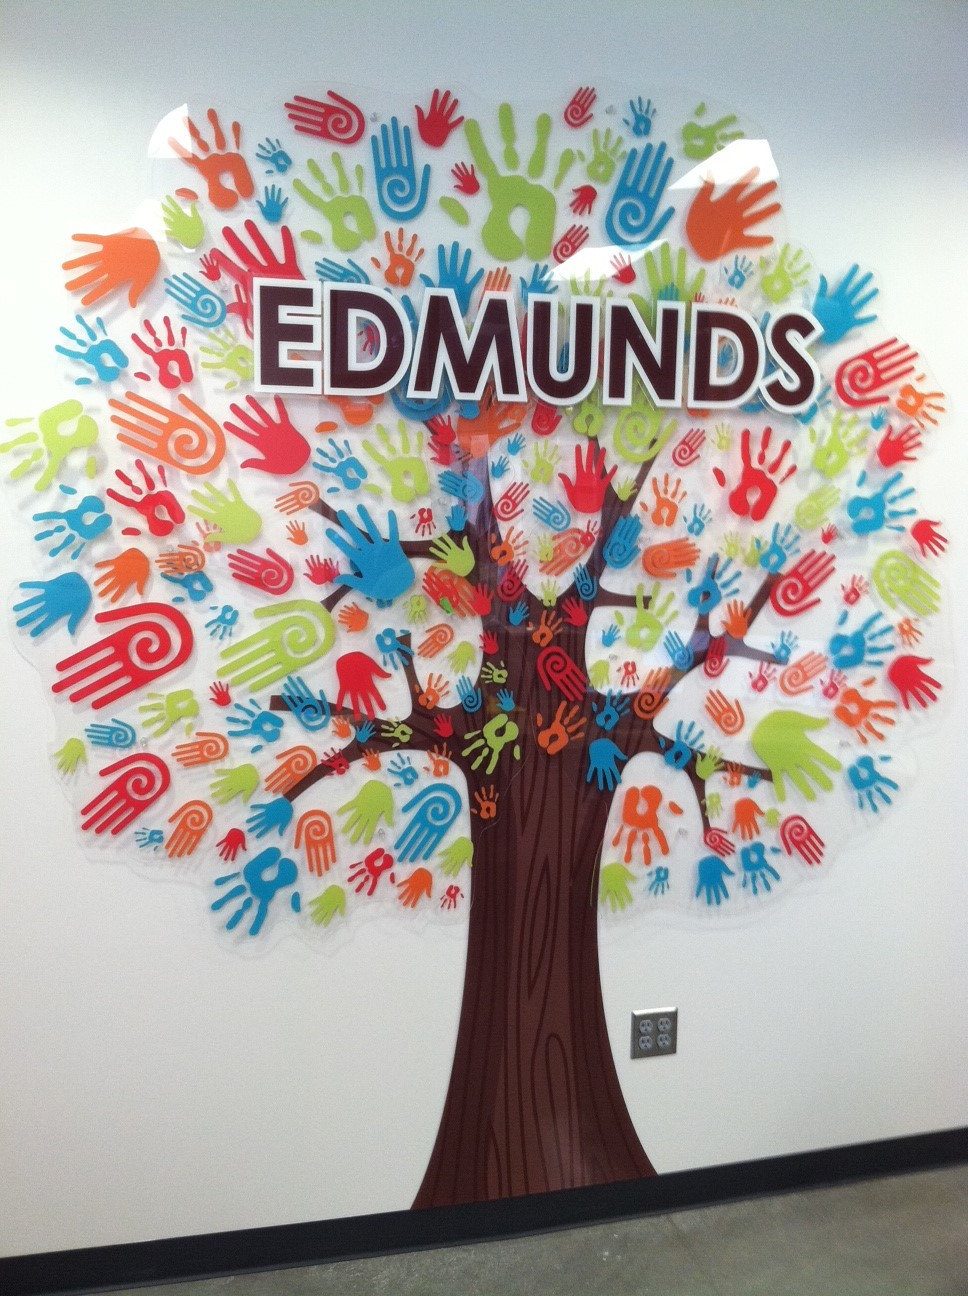 Edmunds Tree